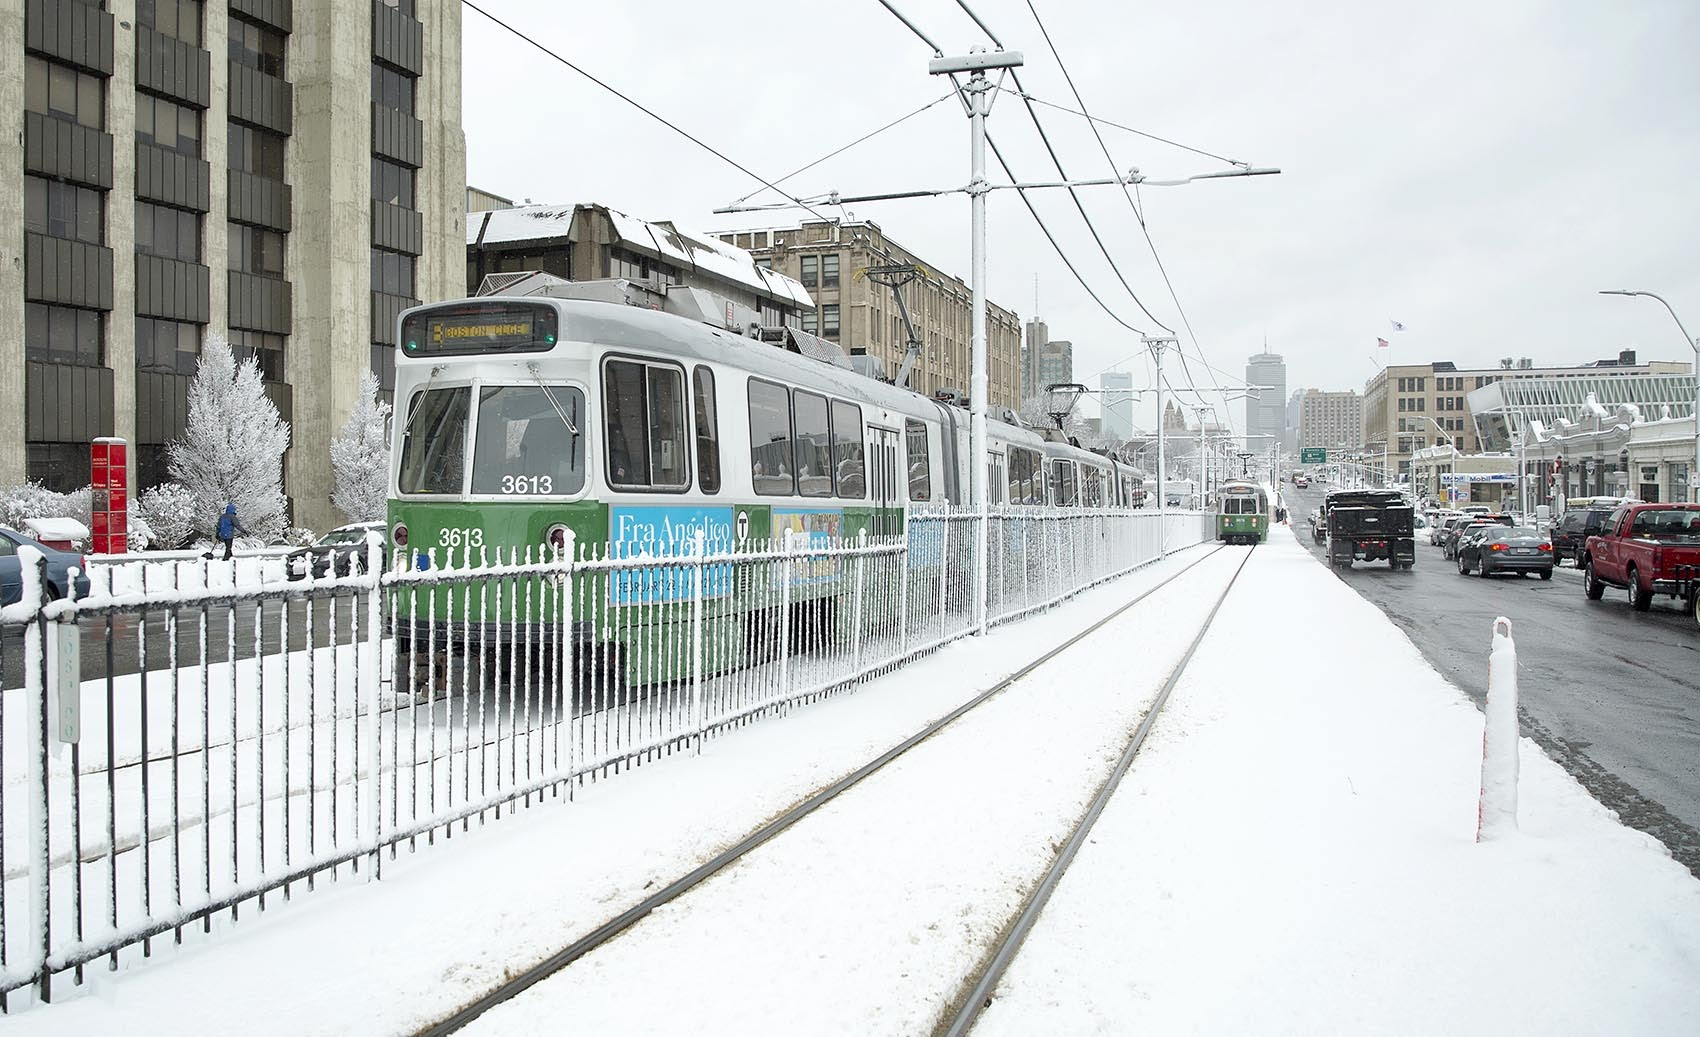 MBTA Green Line trains run along snow-covered lines in Boston after overnight snow. (Robin Lubbock/WBUR)